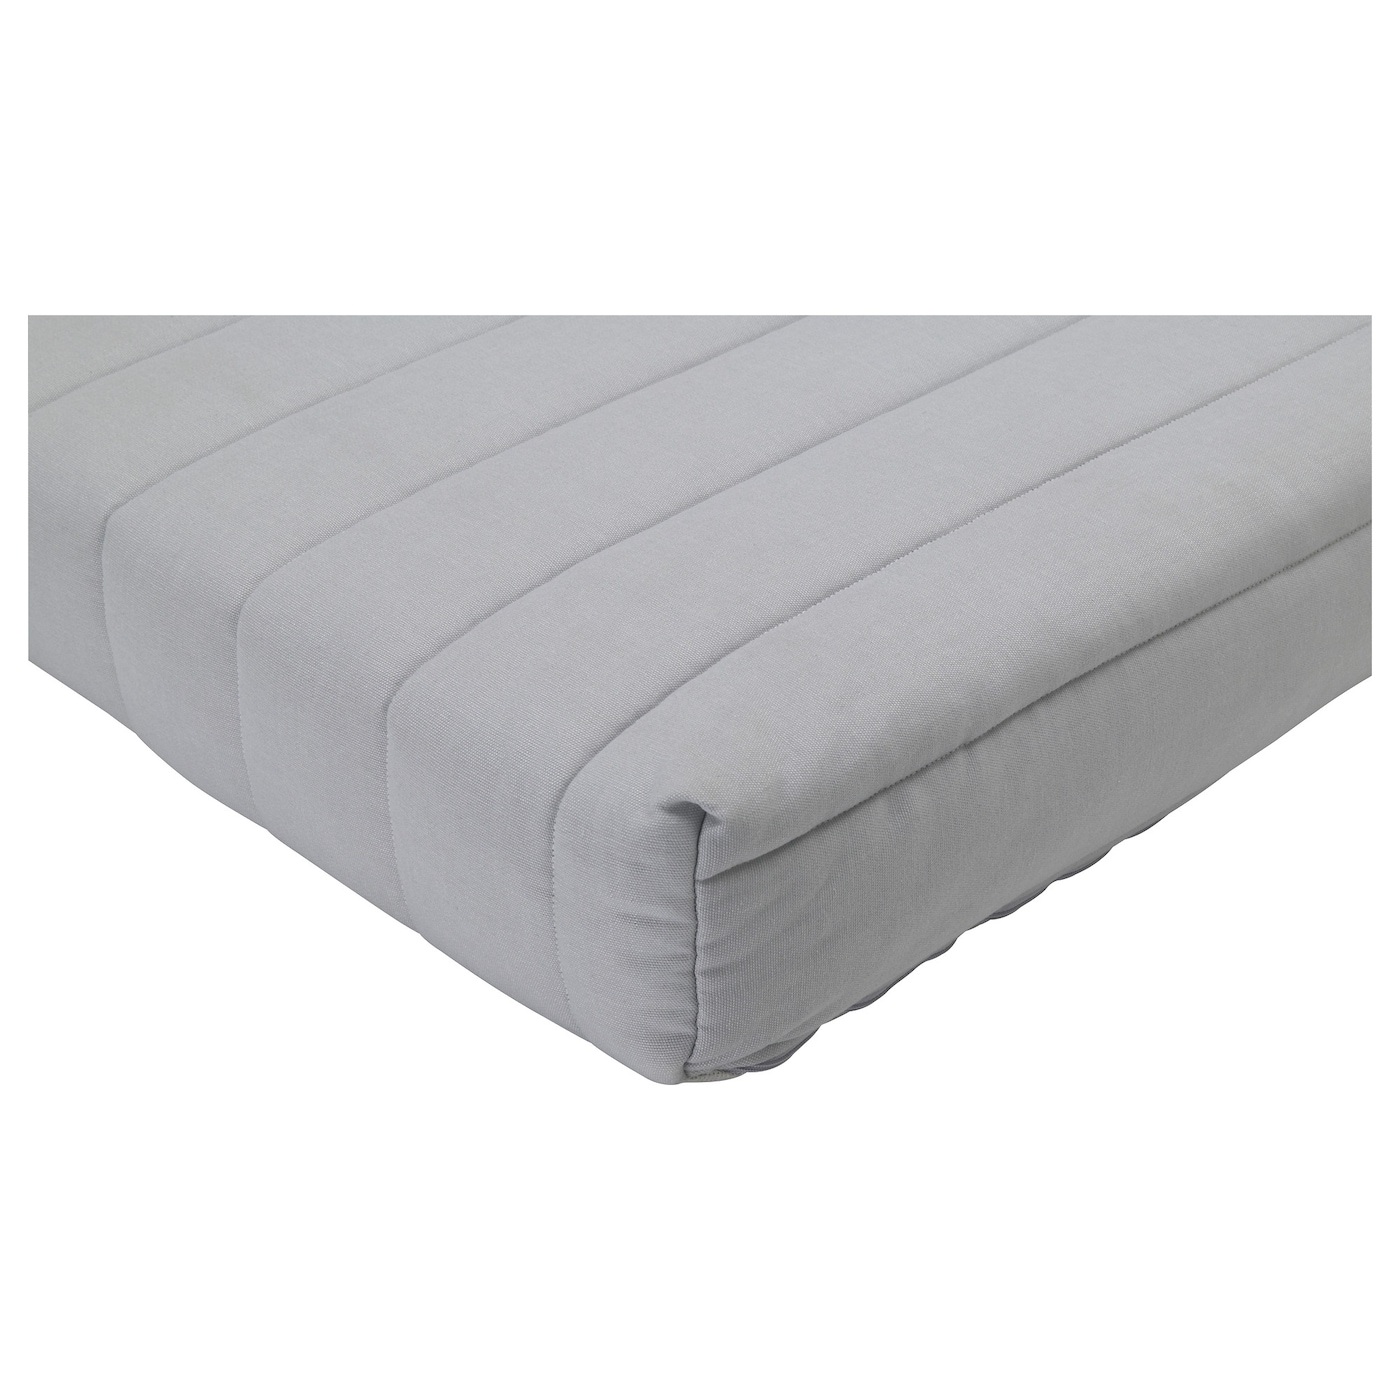 Futon Mattress Sofa Bed Mattress IKEA